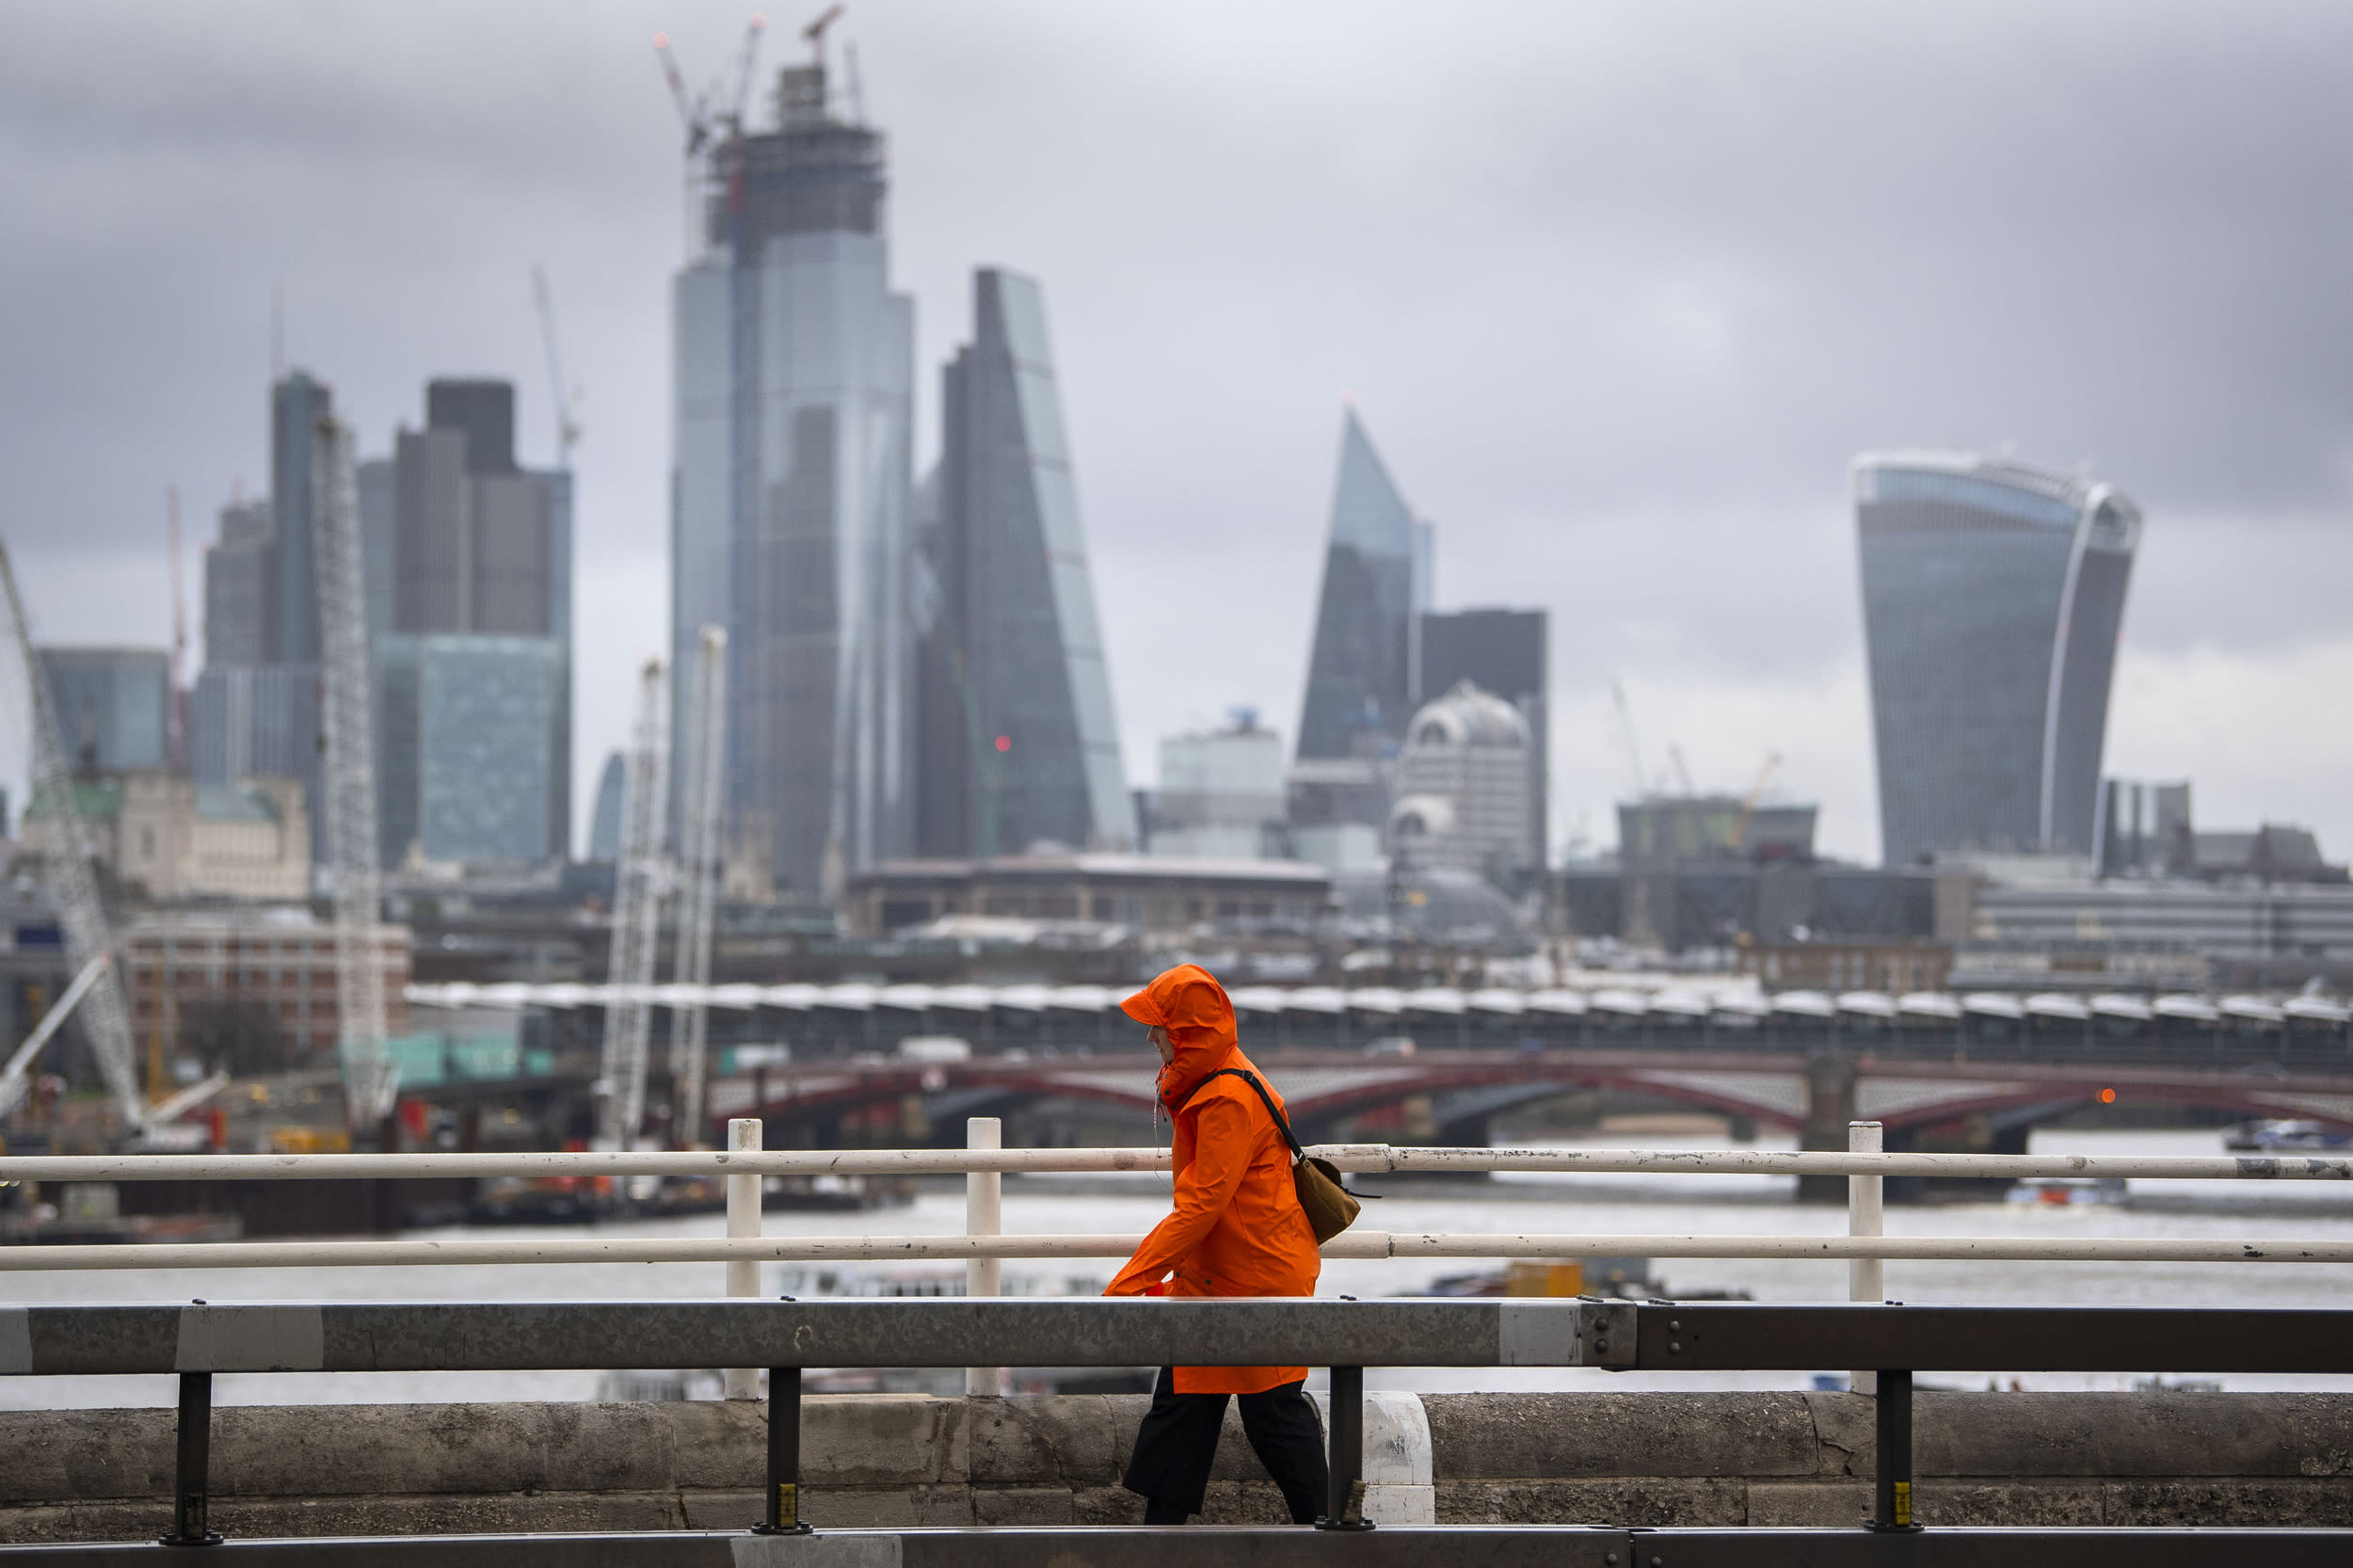 A woman battles against strong winds and rain on Waterloo Bridge in central London, as Storm Erik brought strong winds to parts of the country. (Photo by Victoria Jones/PA Images via Getty Images)